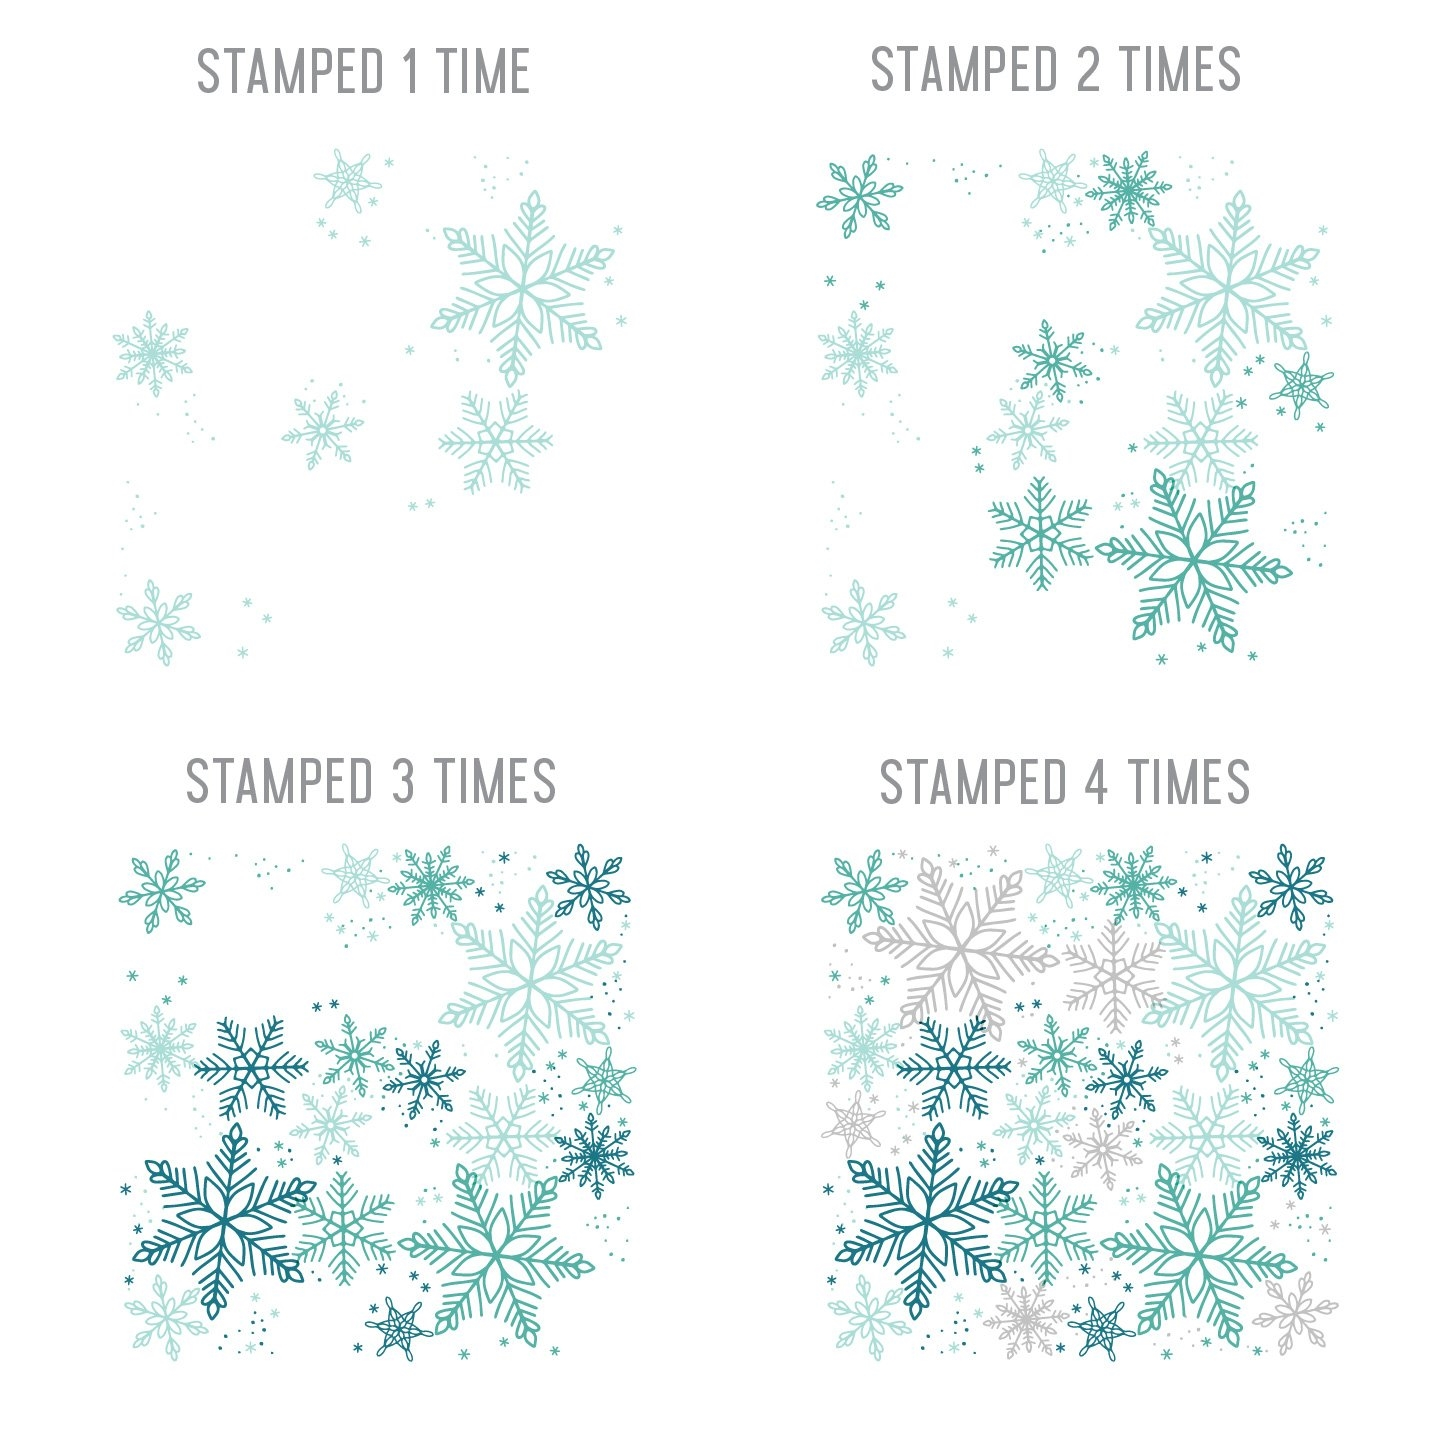 Happymade - Concord & 9th clear stamp - Snowflakes Turnabout 2